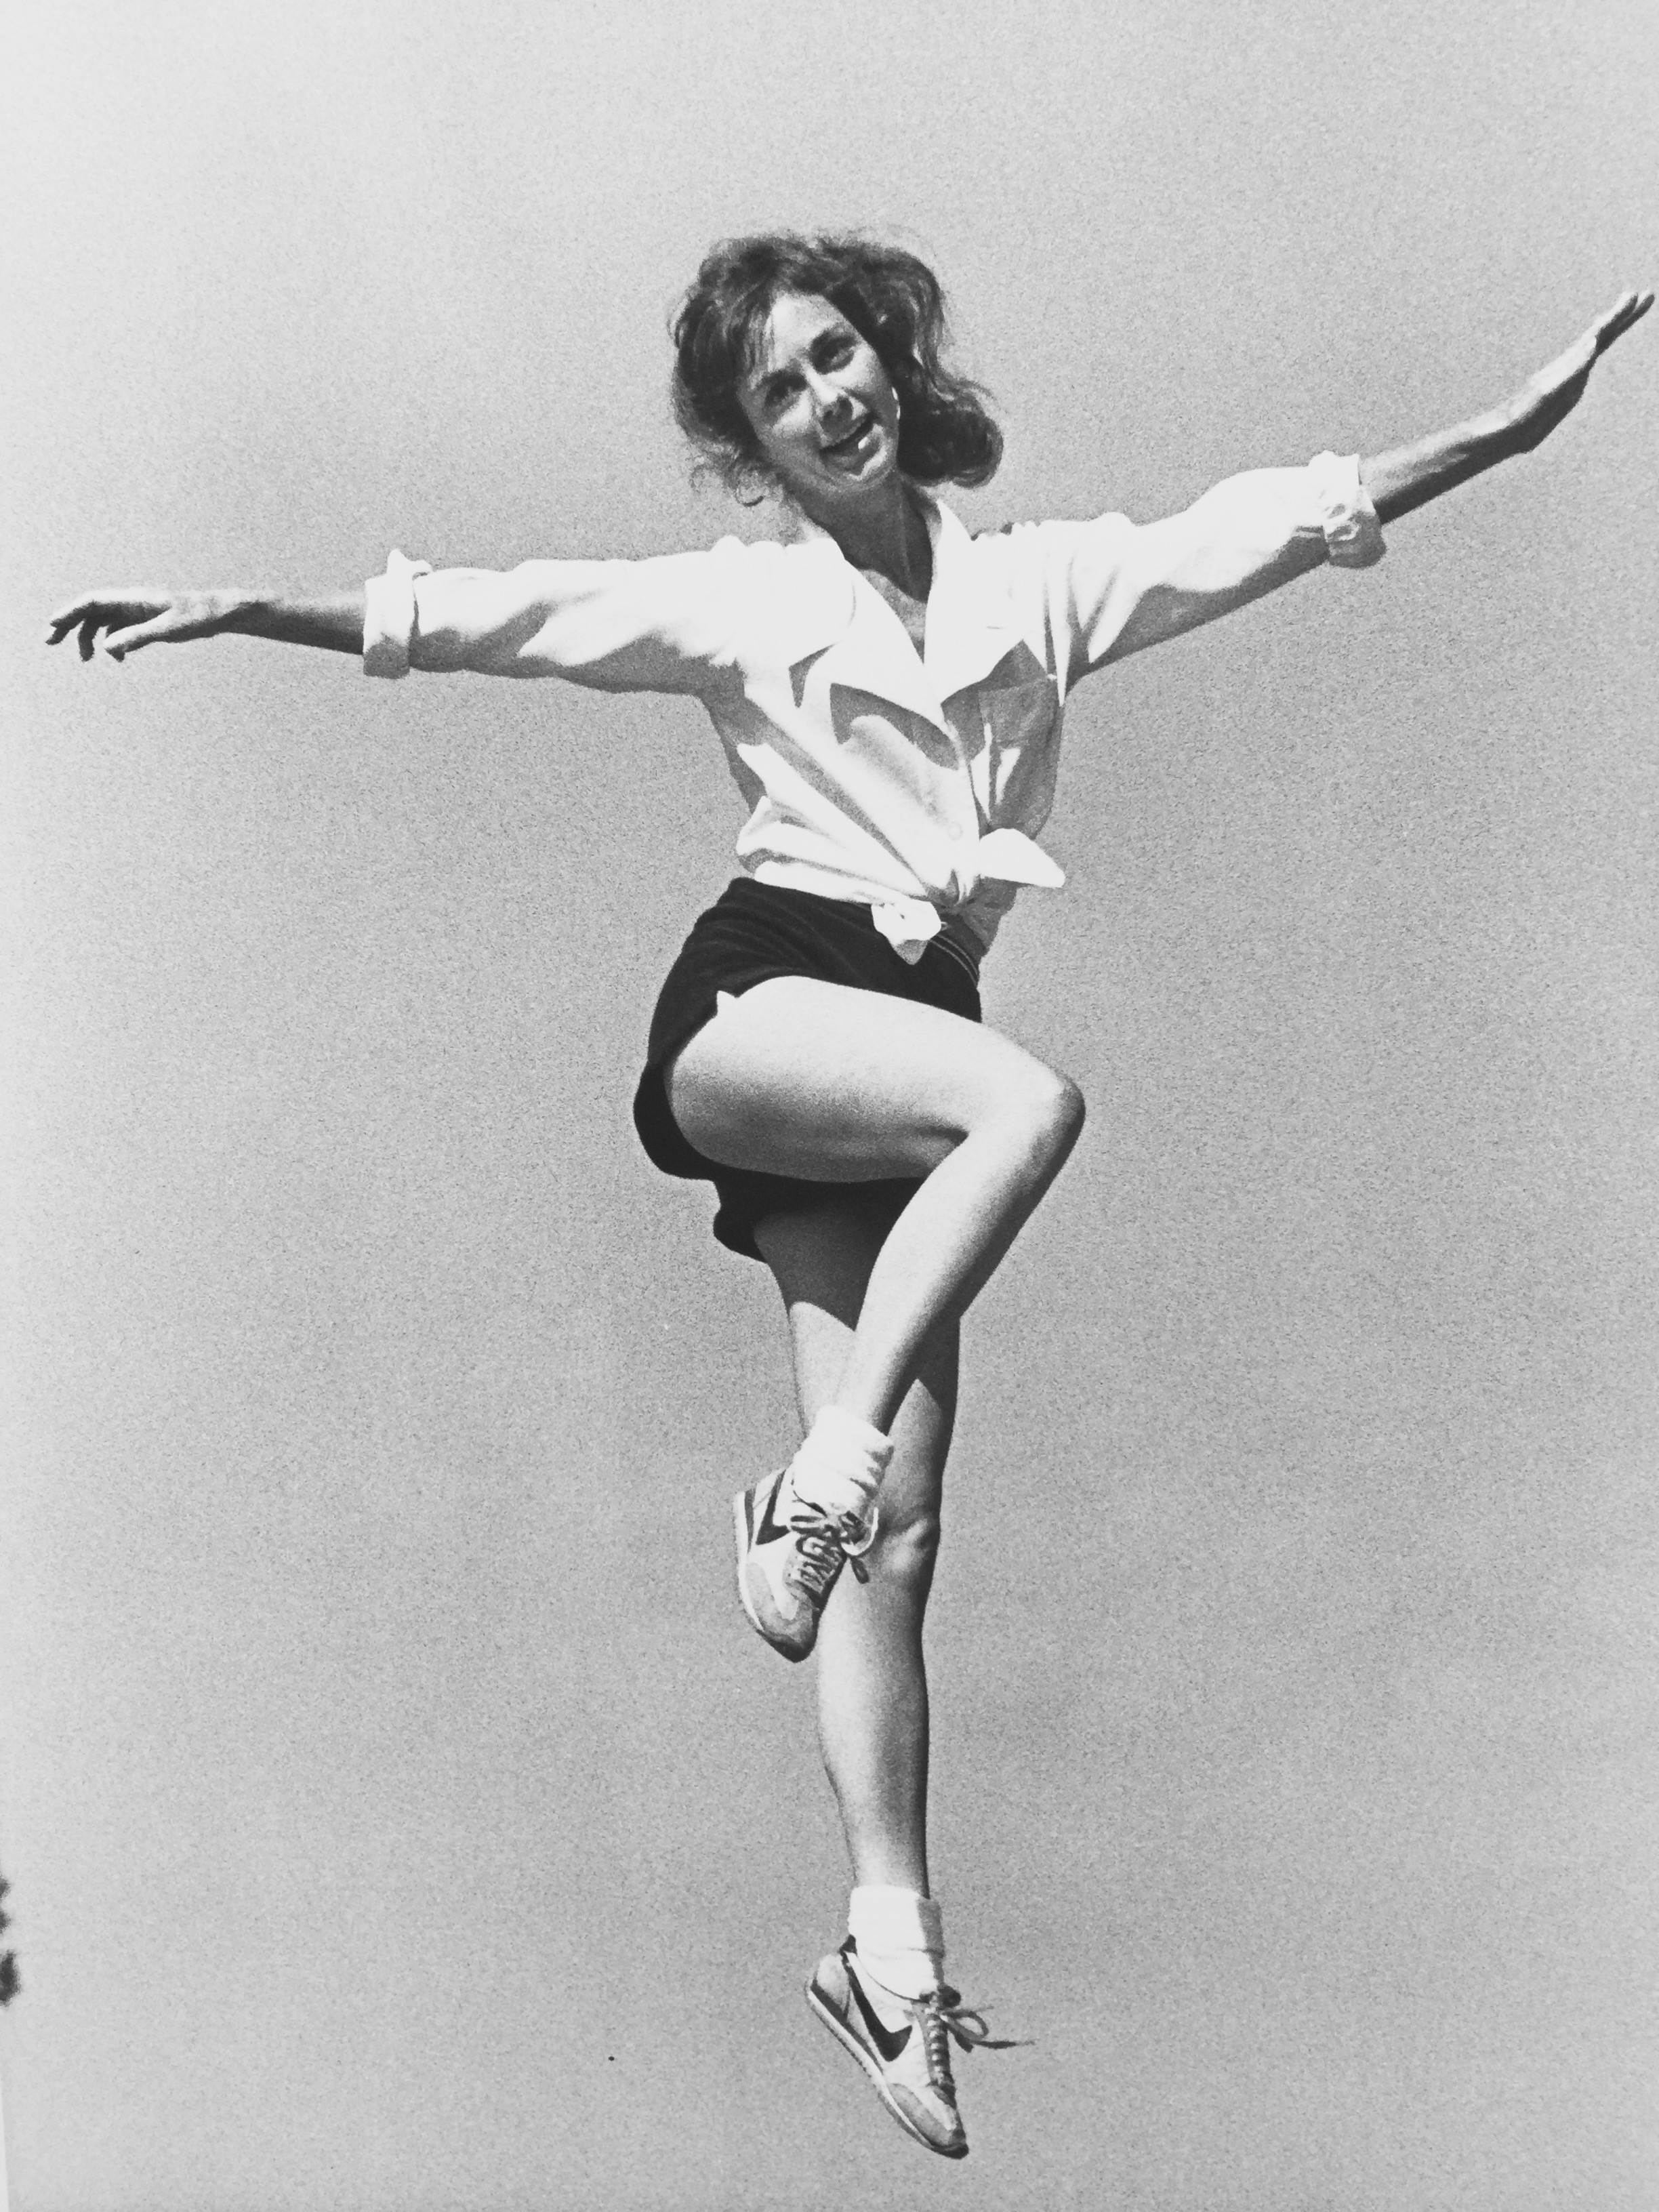 Promo photo for my Dance Alive Aerobics classes, c 1978. Watch out Jane Fonda!